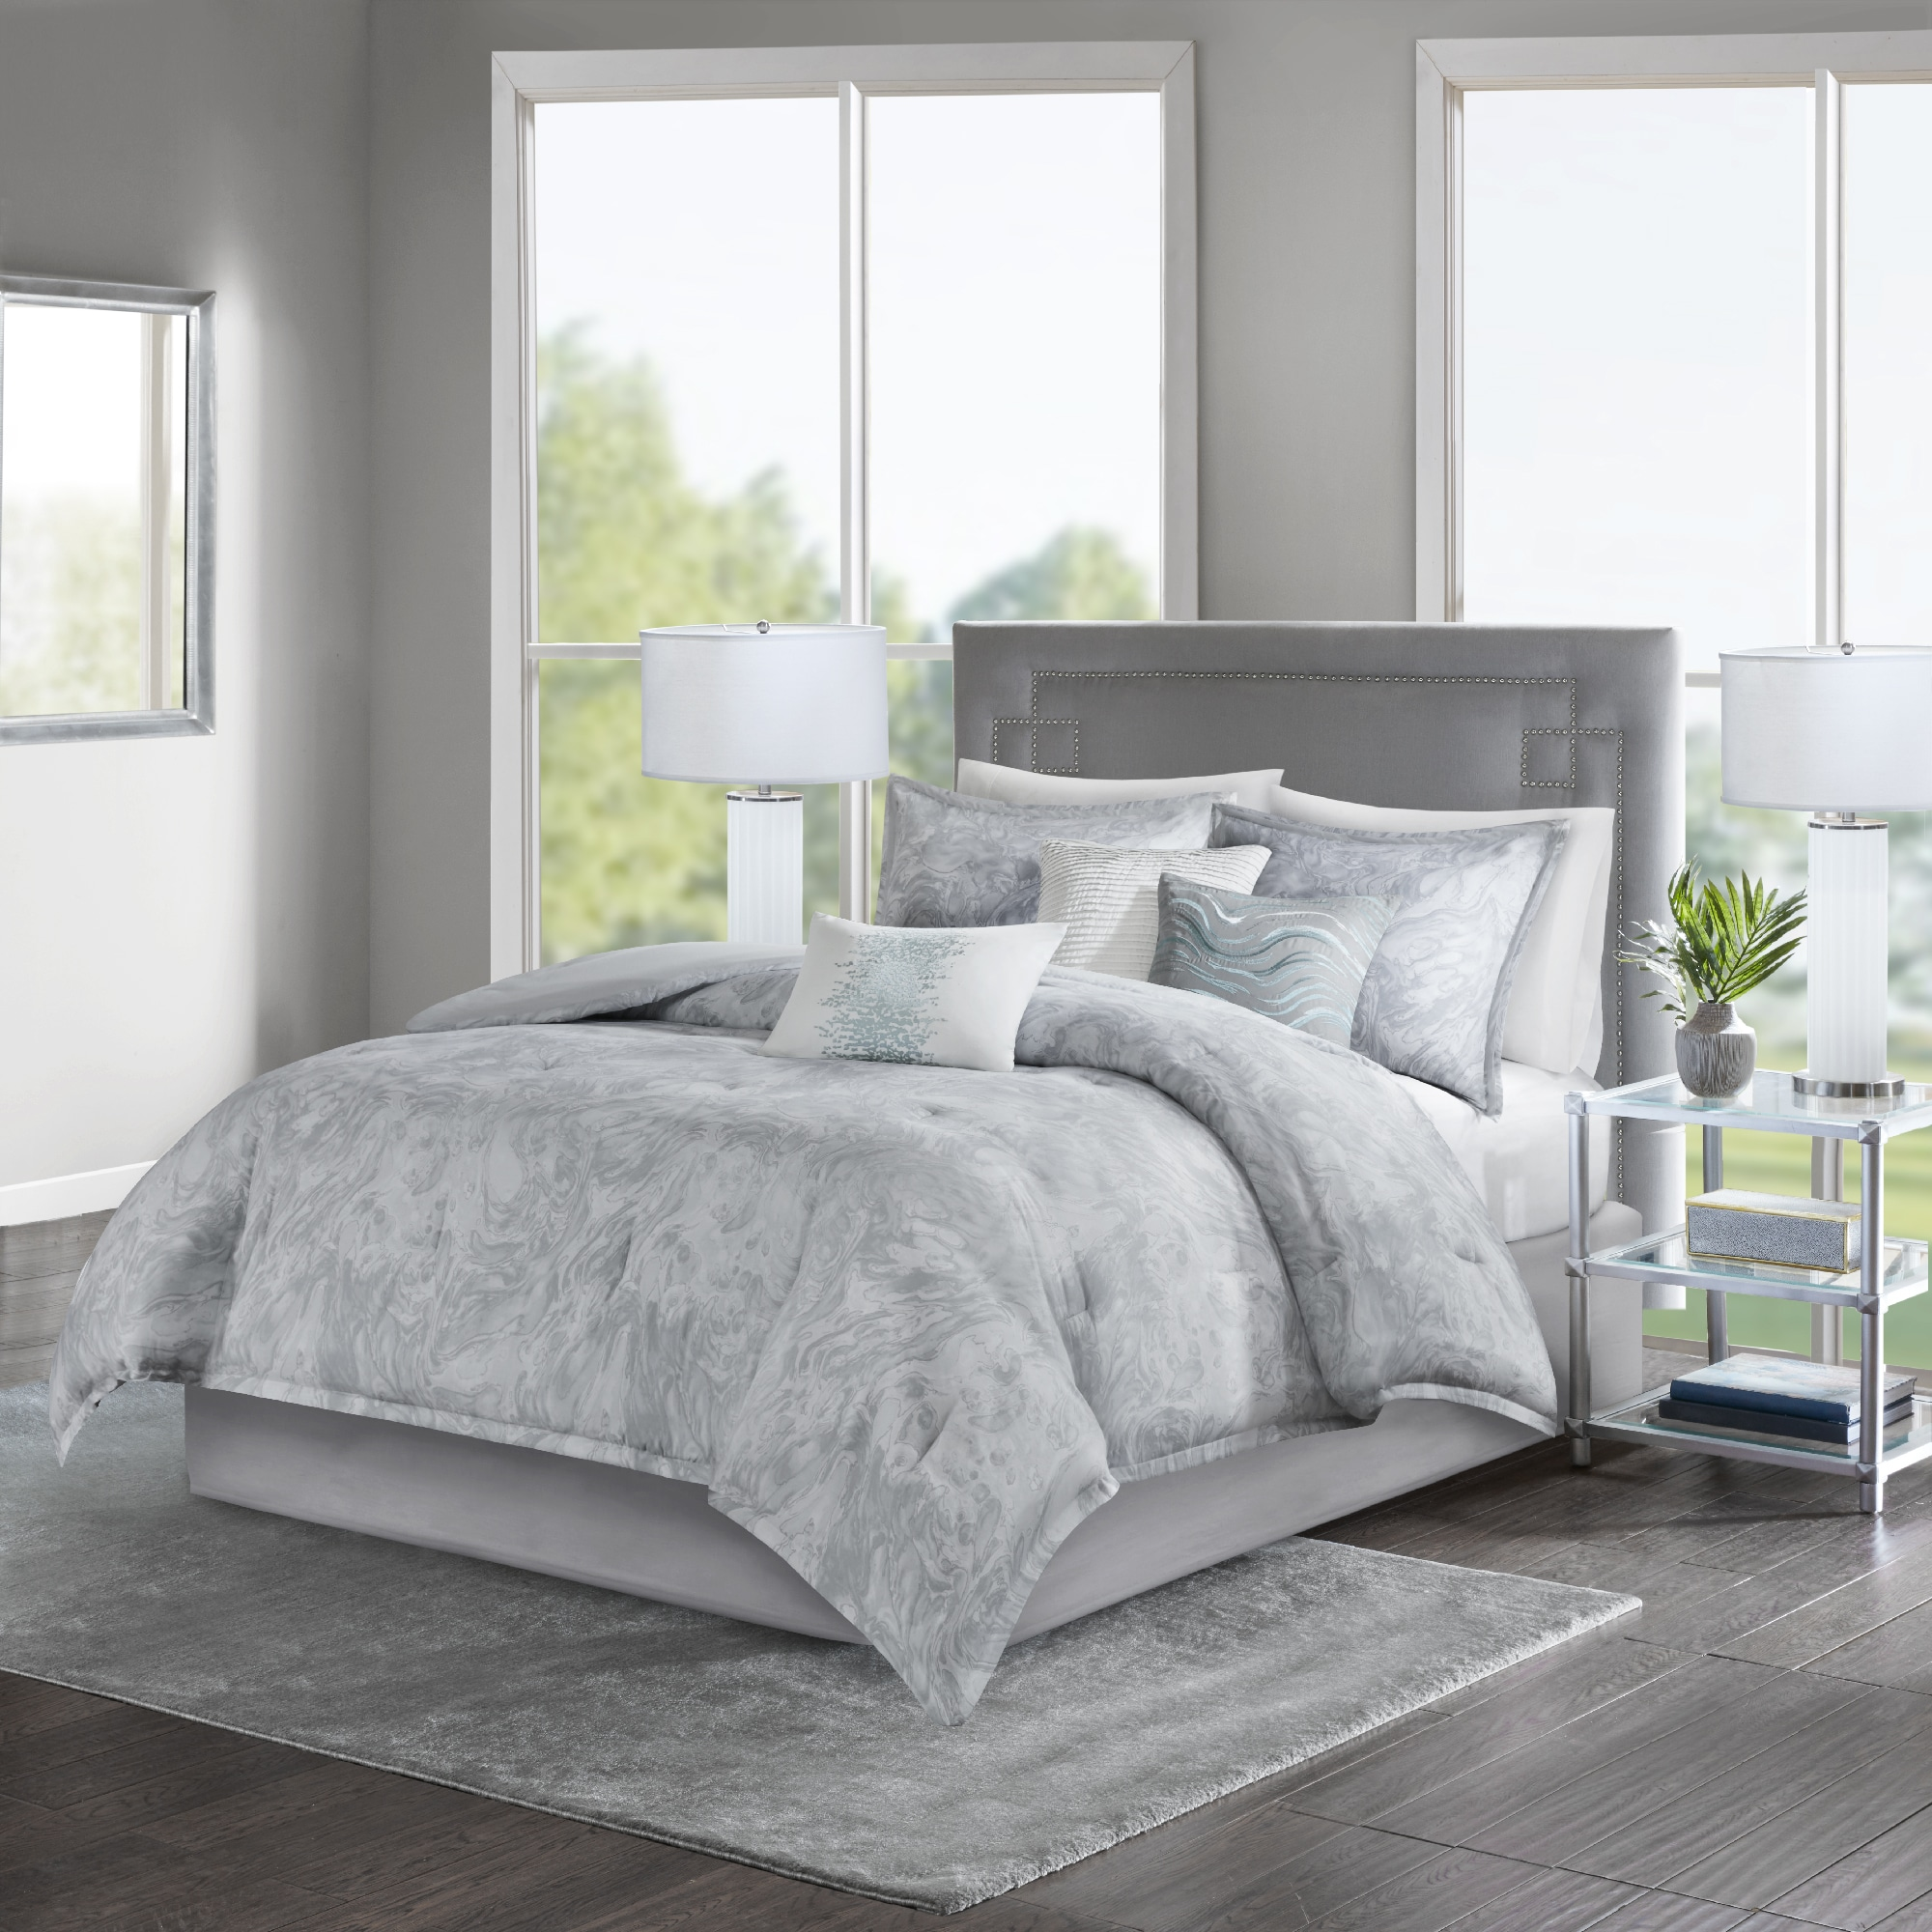 tracy comforter collection bedding sateen pin collections astrid house porter bed